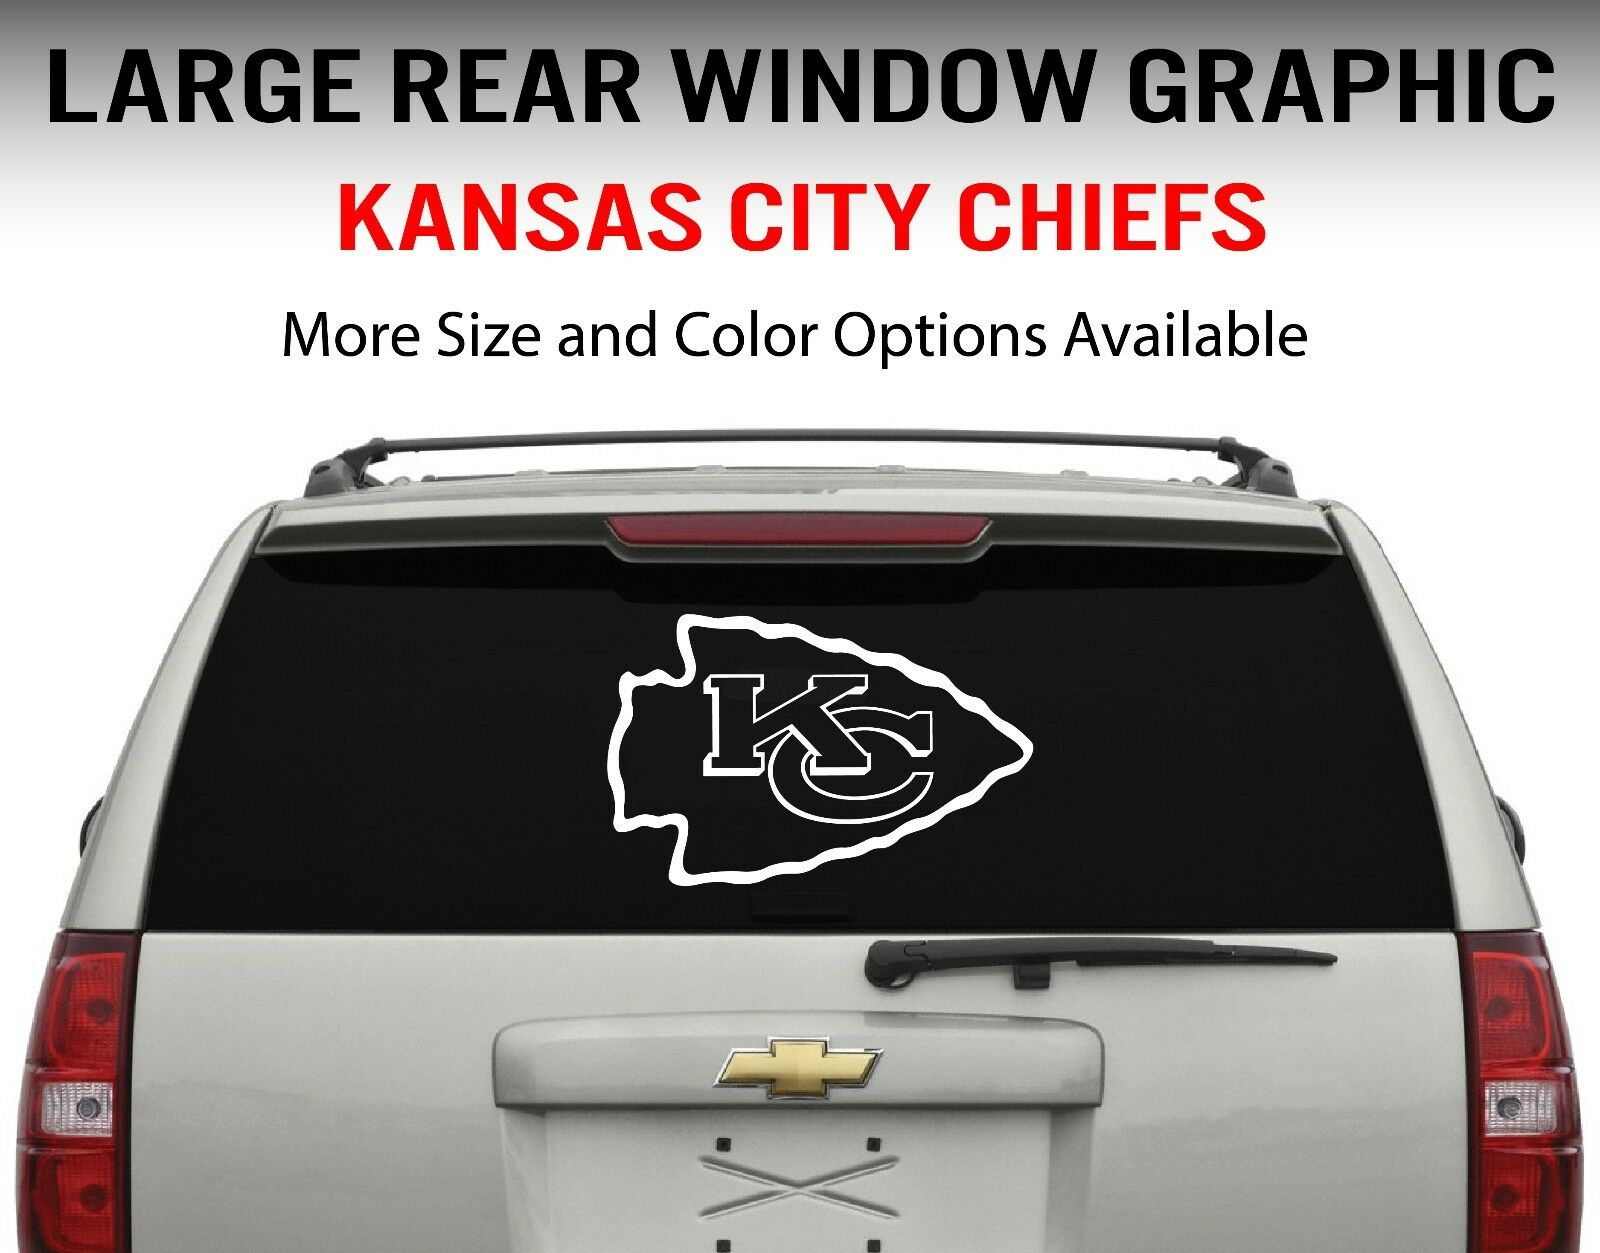 Kansas City Chiefs Window Decal Graphic Sticker Car Truck SUV - Sporting kc car decals